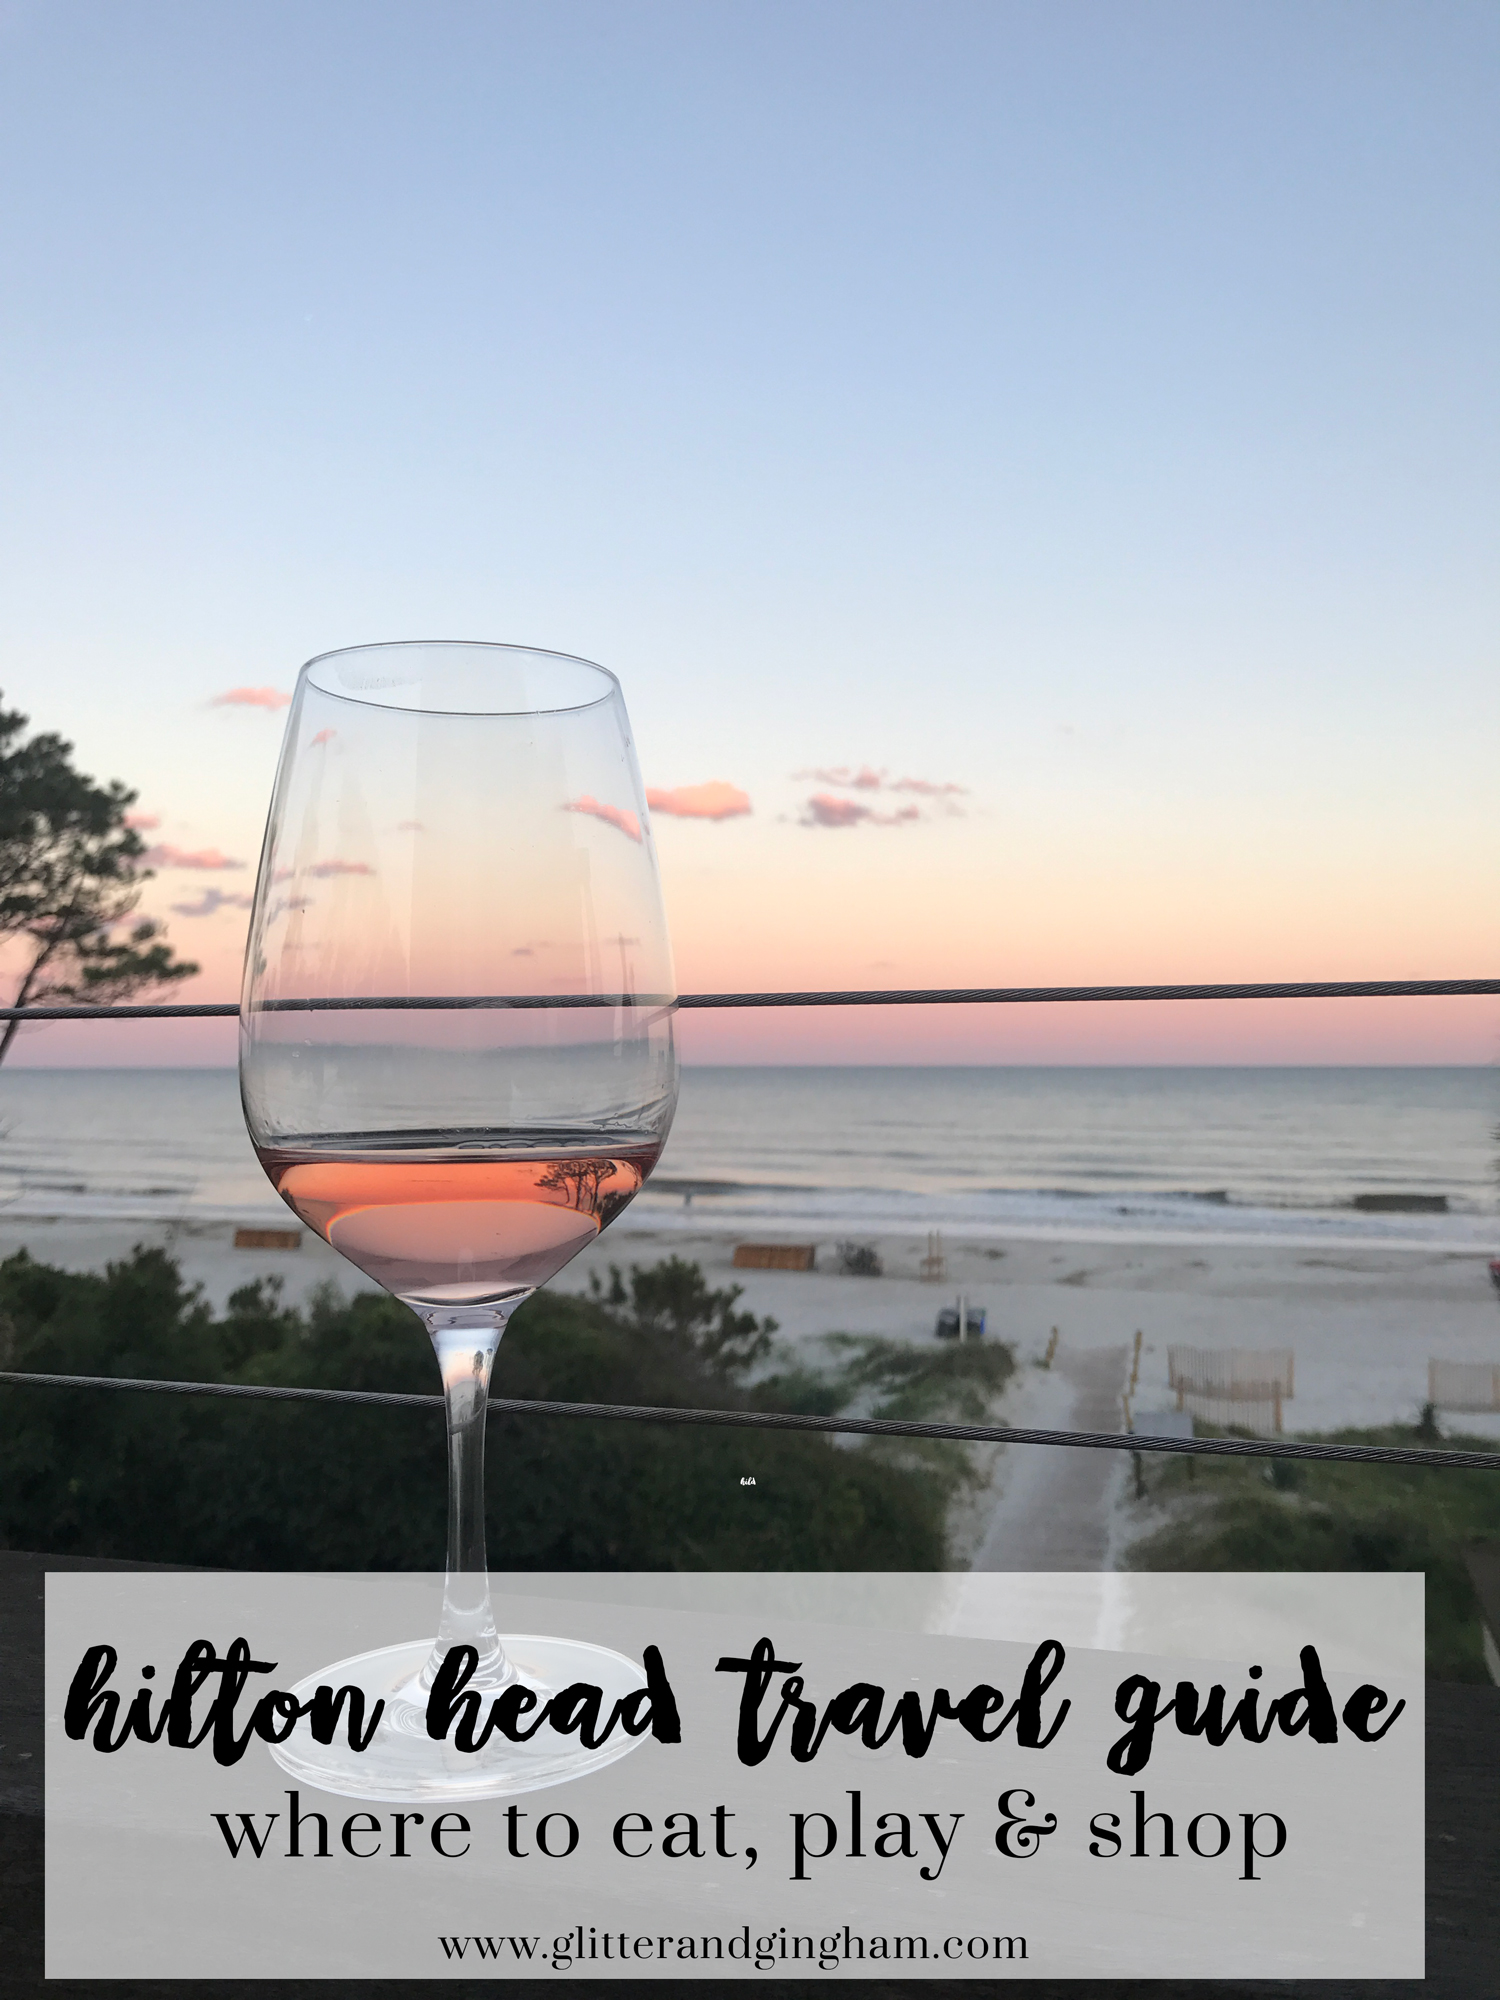 Hilton Head Travel Guide / where to eat, drink & play